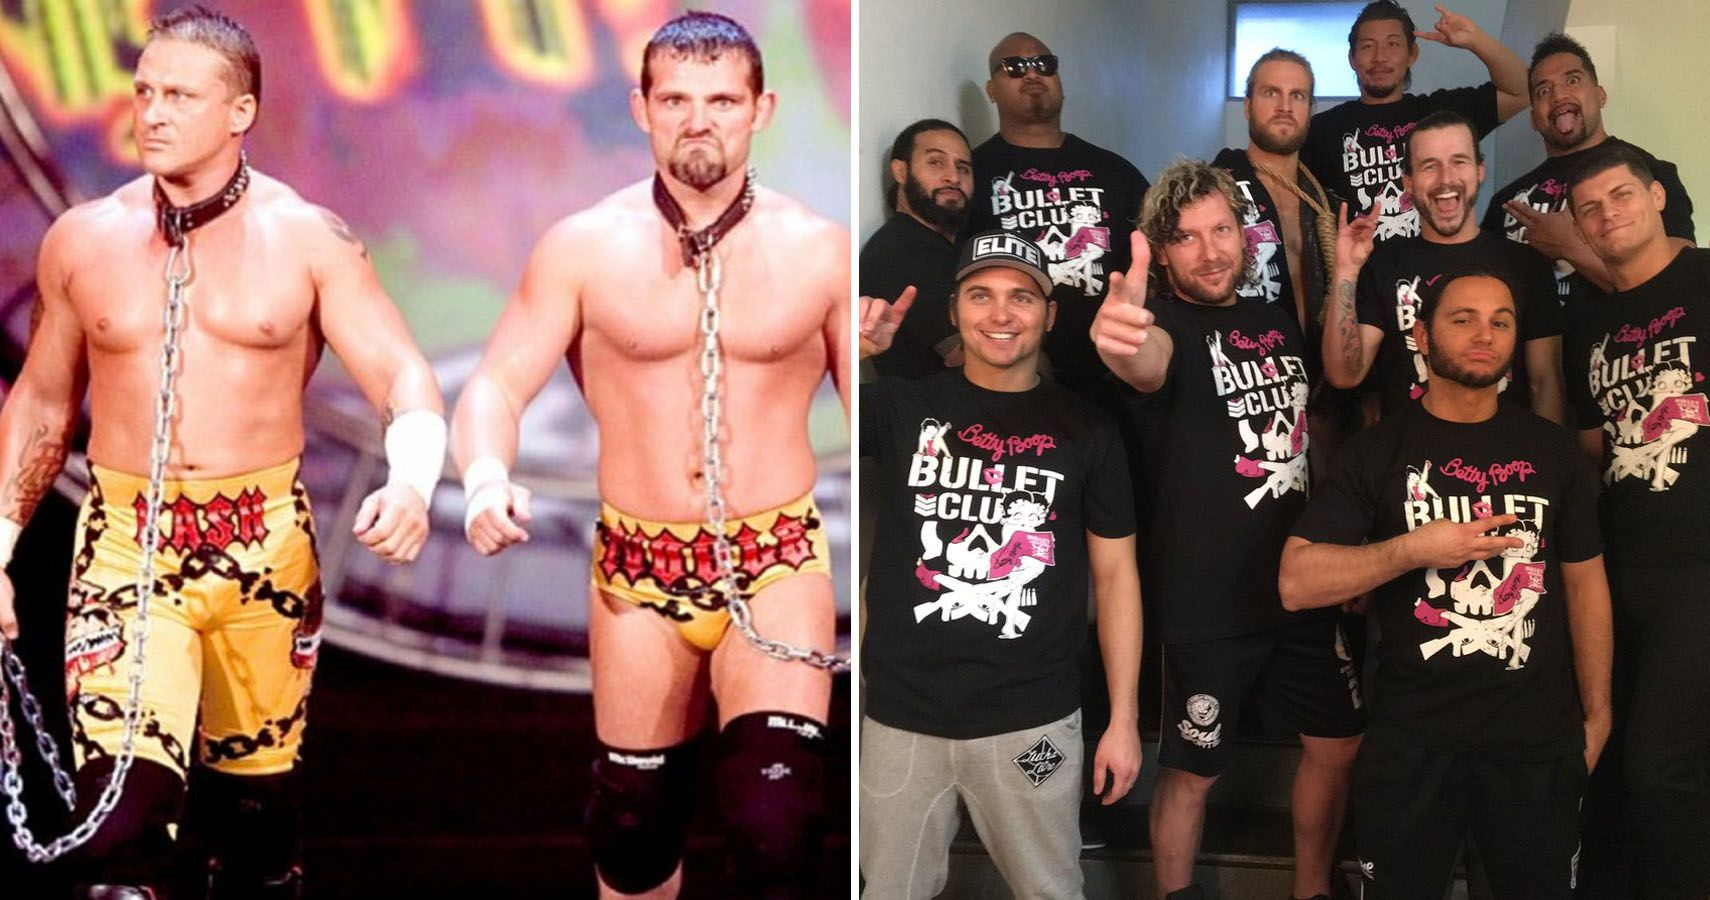 Tags Dance Teams New Members: 10 Recycled Tag Team Gimmicks That Totally Flopped (And 10